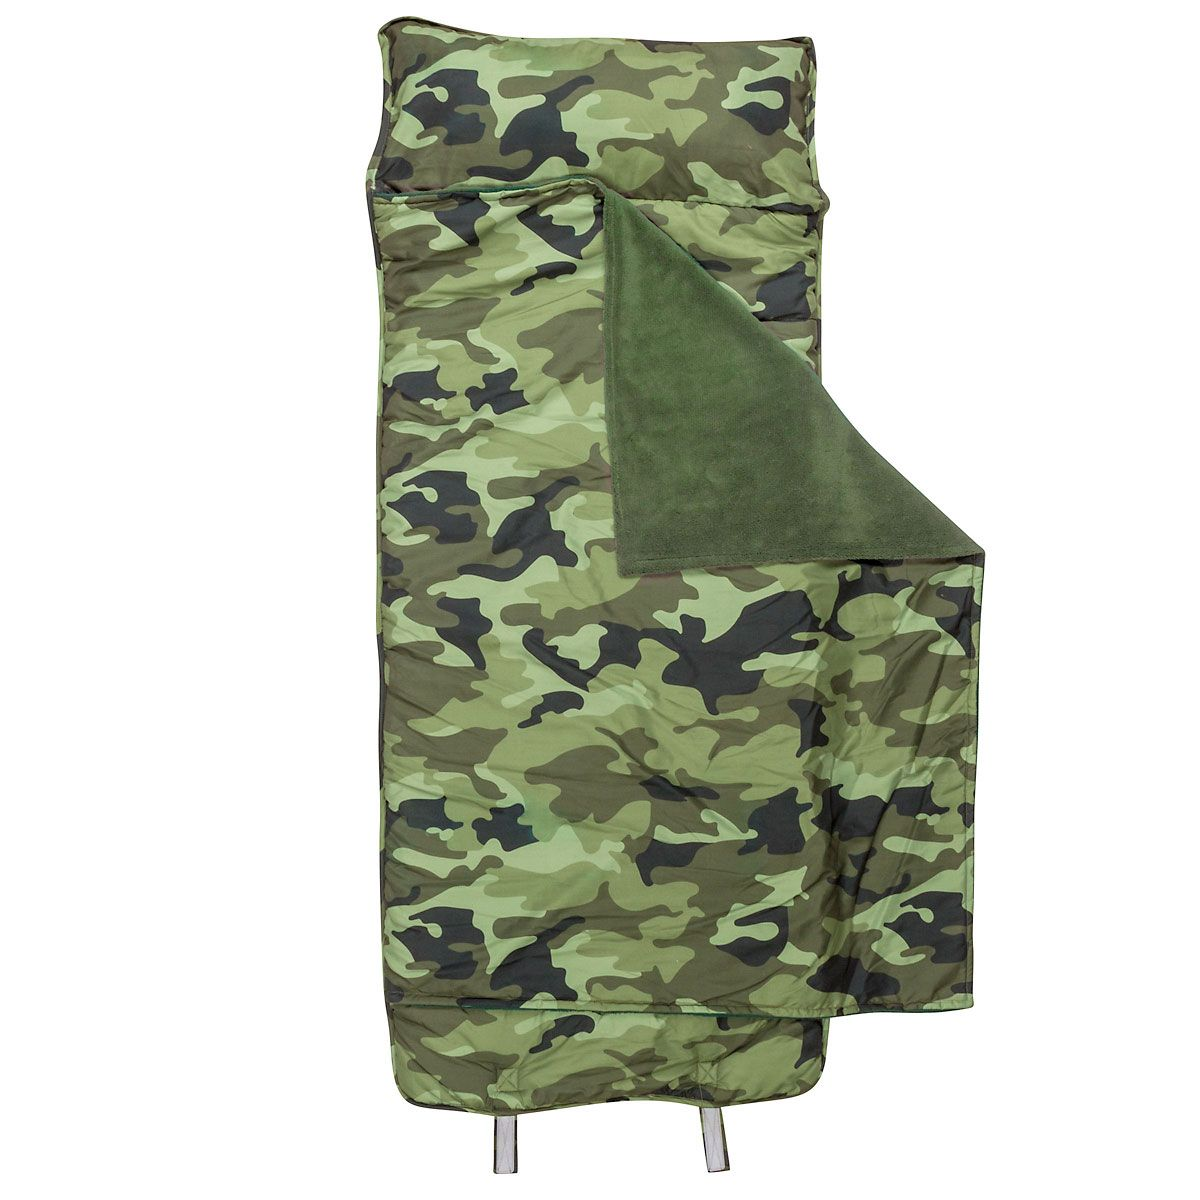 Personalized Camo Print Napmat by Stephen Joseph®